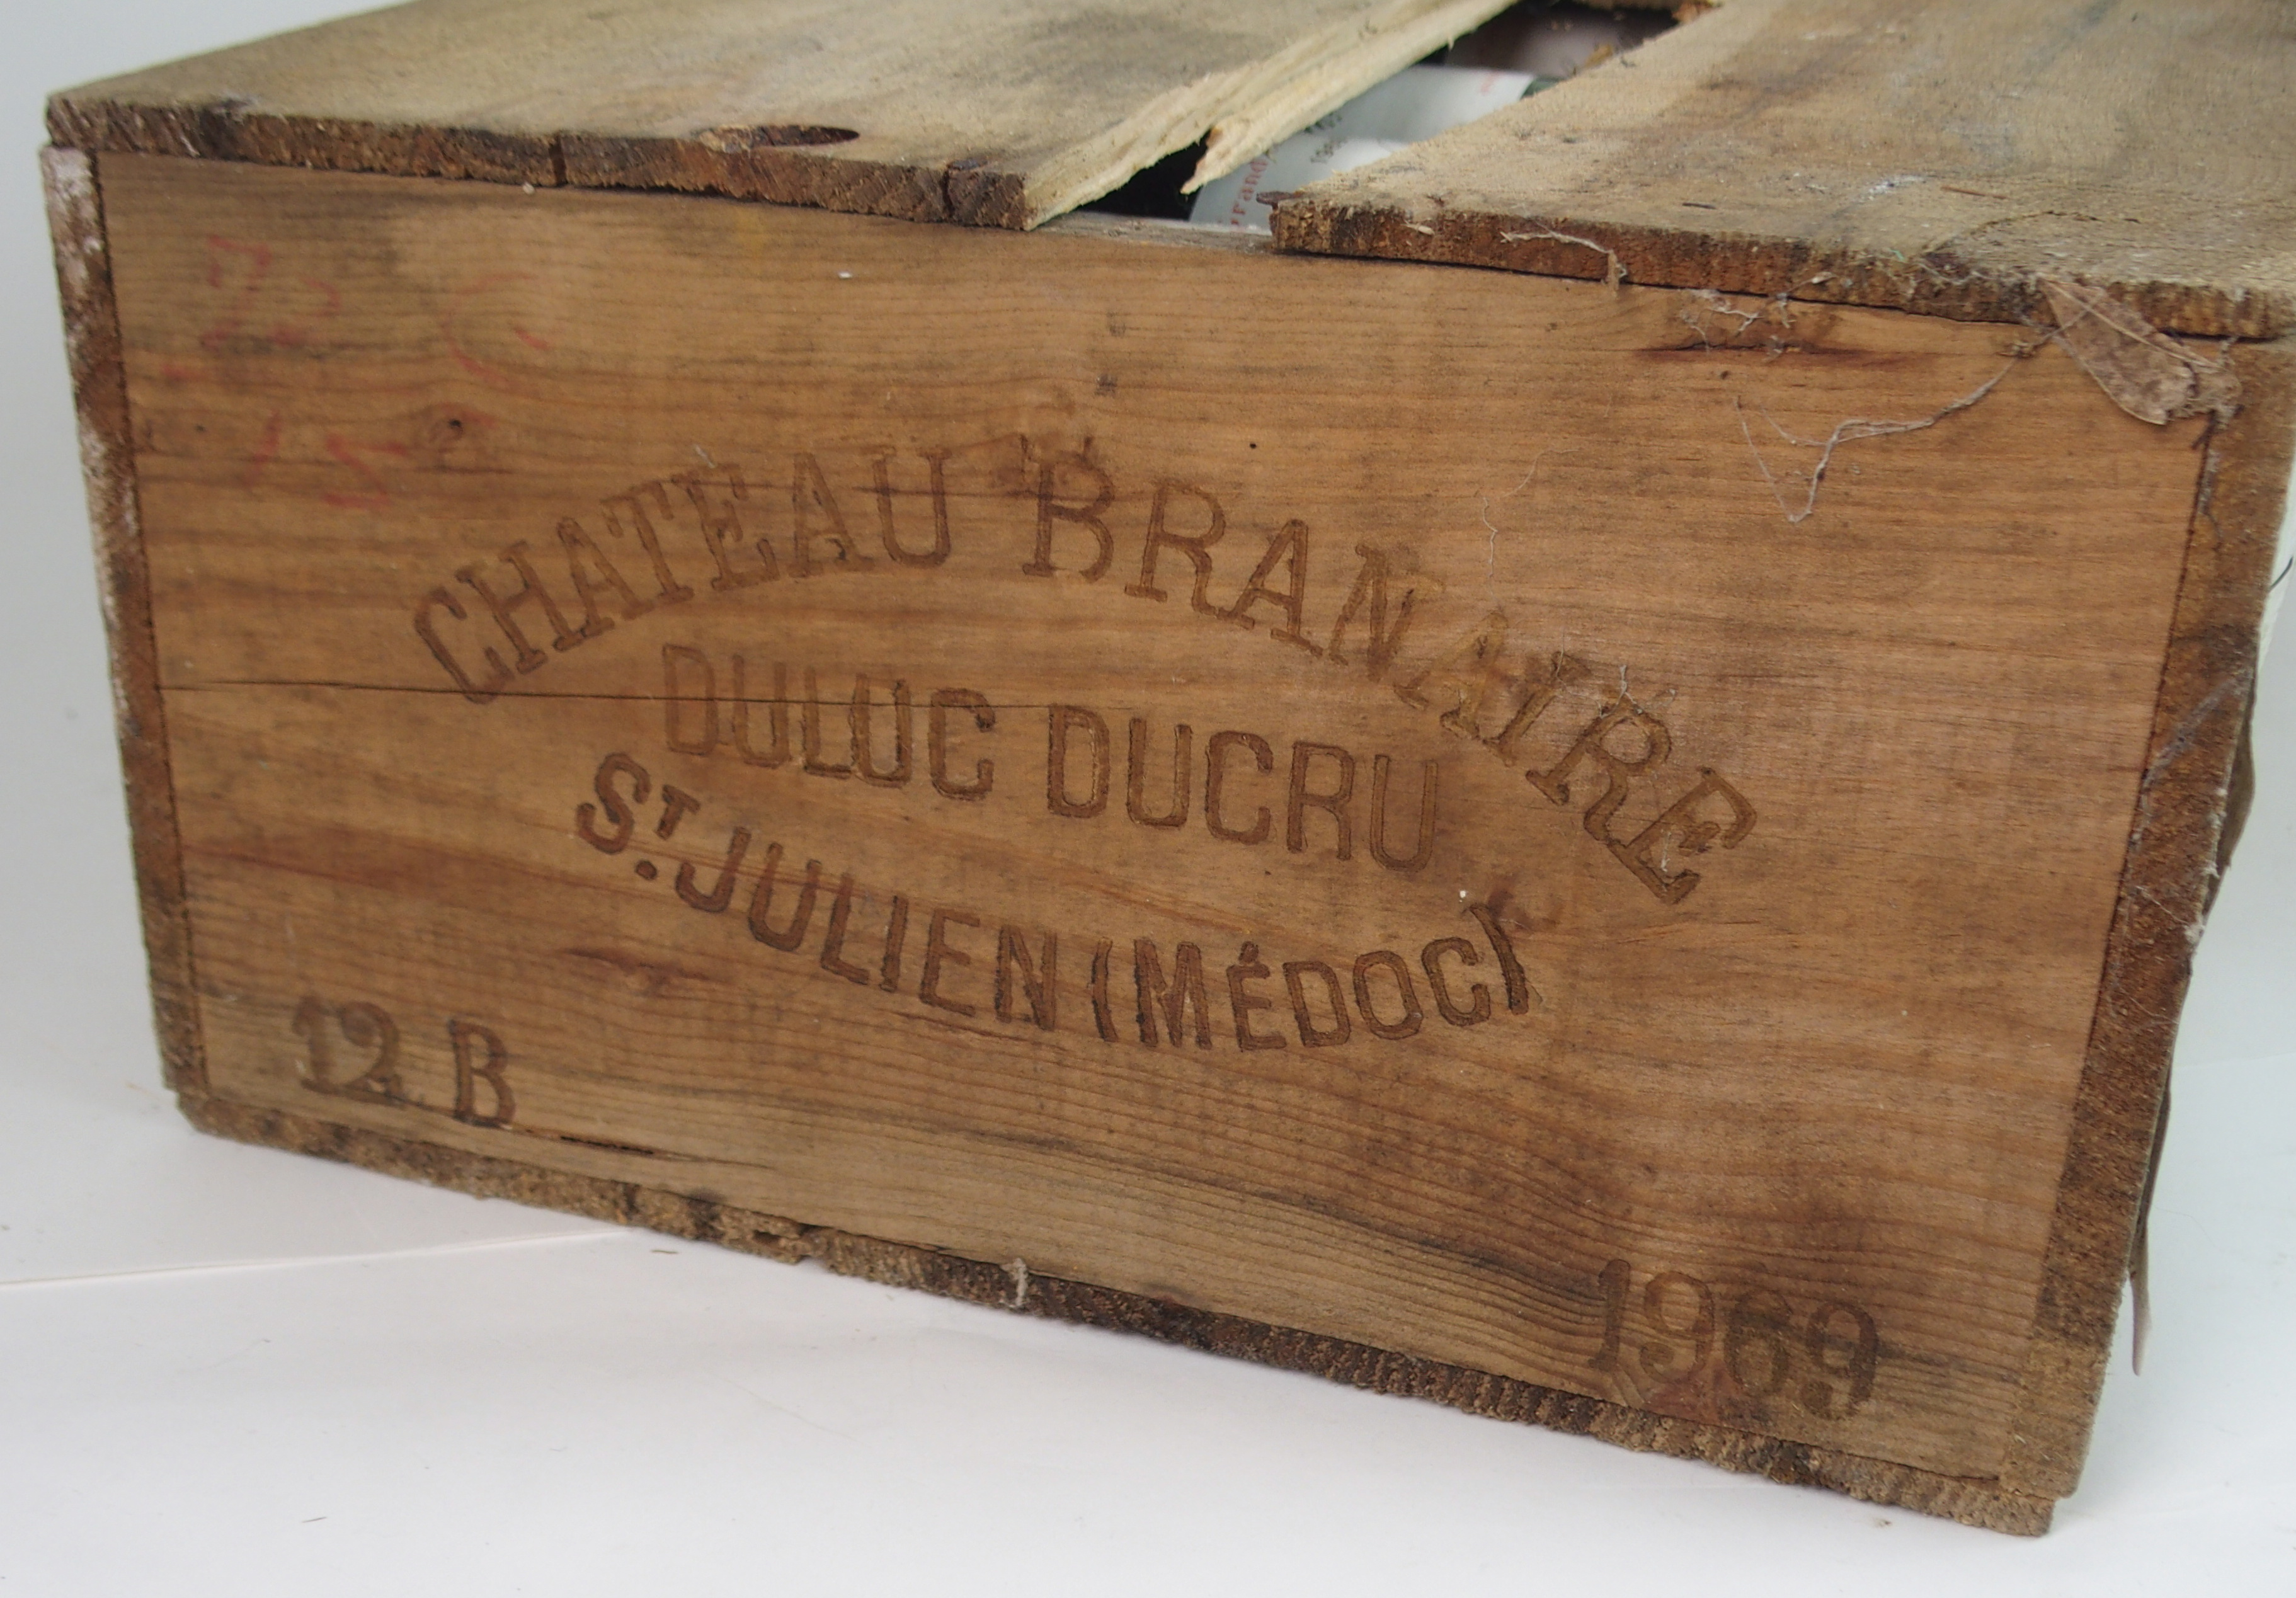 A CASE OF CHATEAU BRANAIRE DULUC DUCRU, ST. JULIEN, 1969 in wooden case Condition Report: - Image 5 of 5